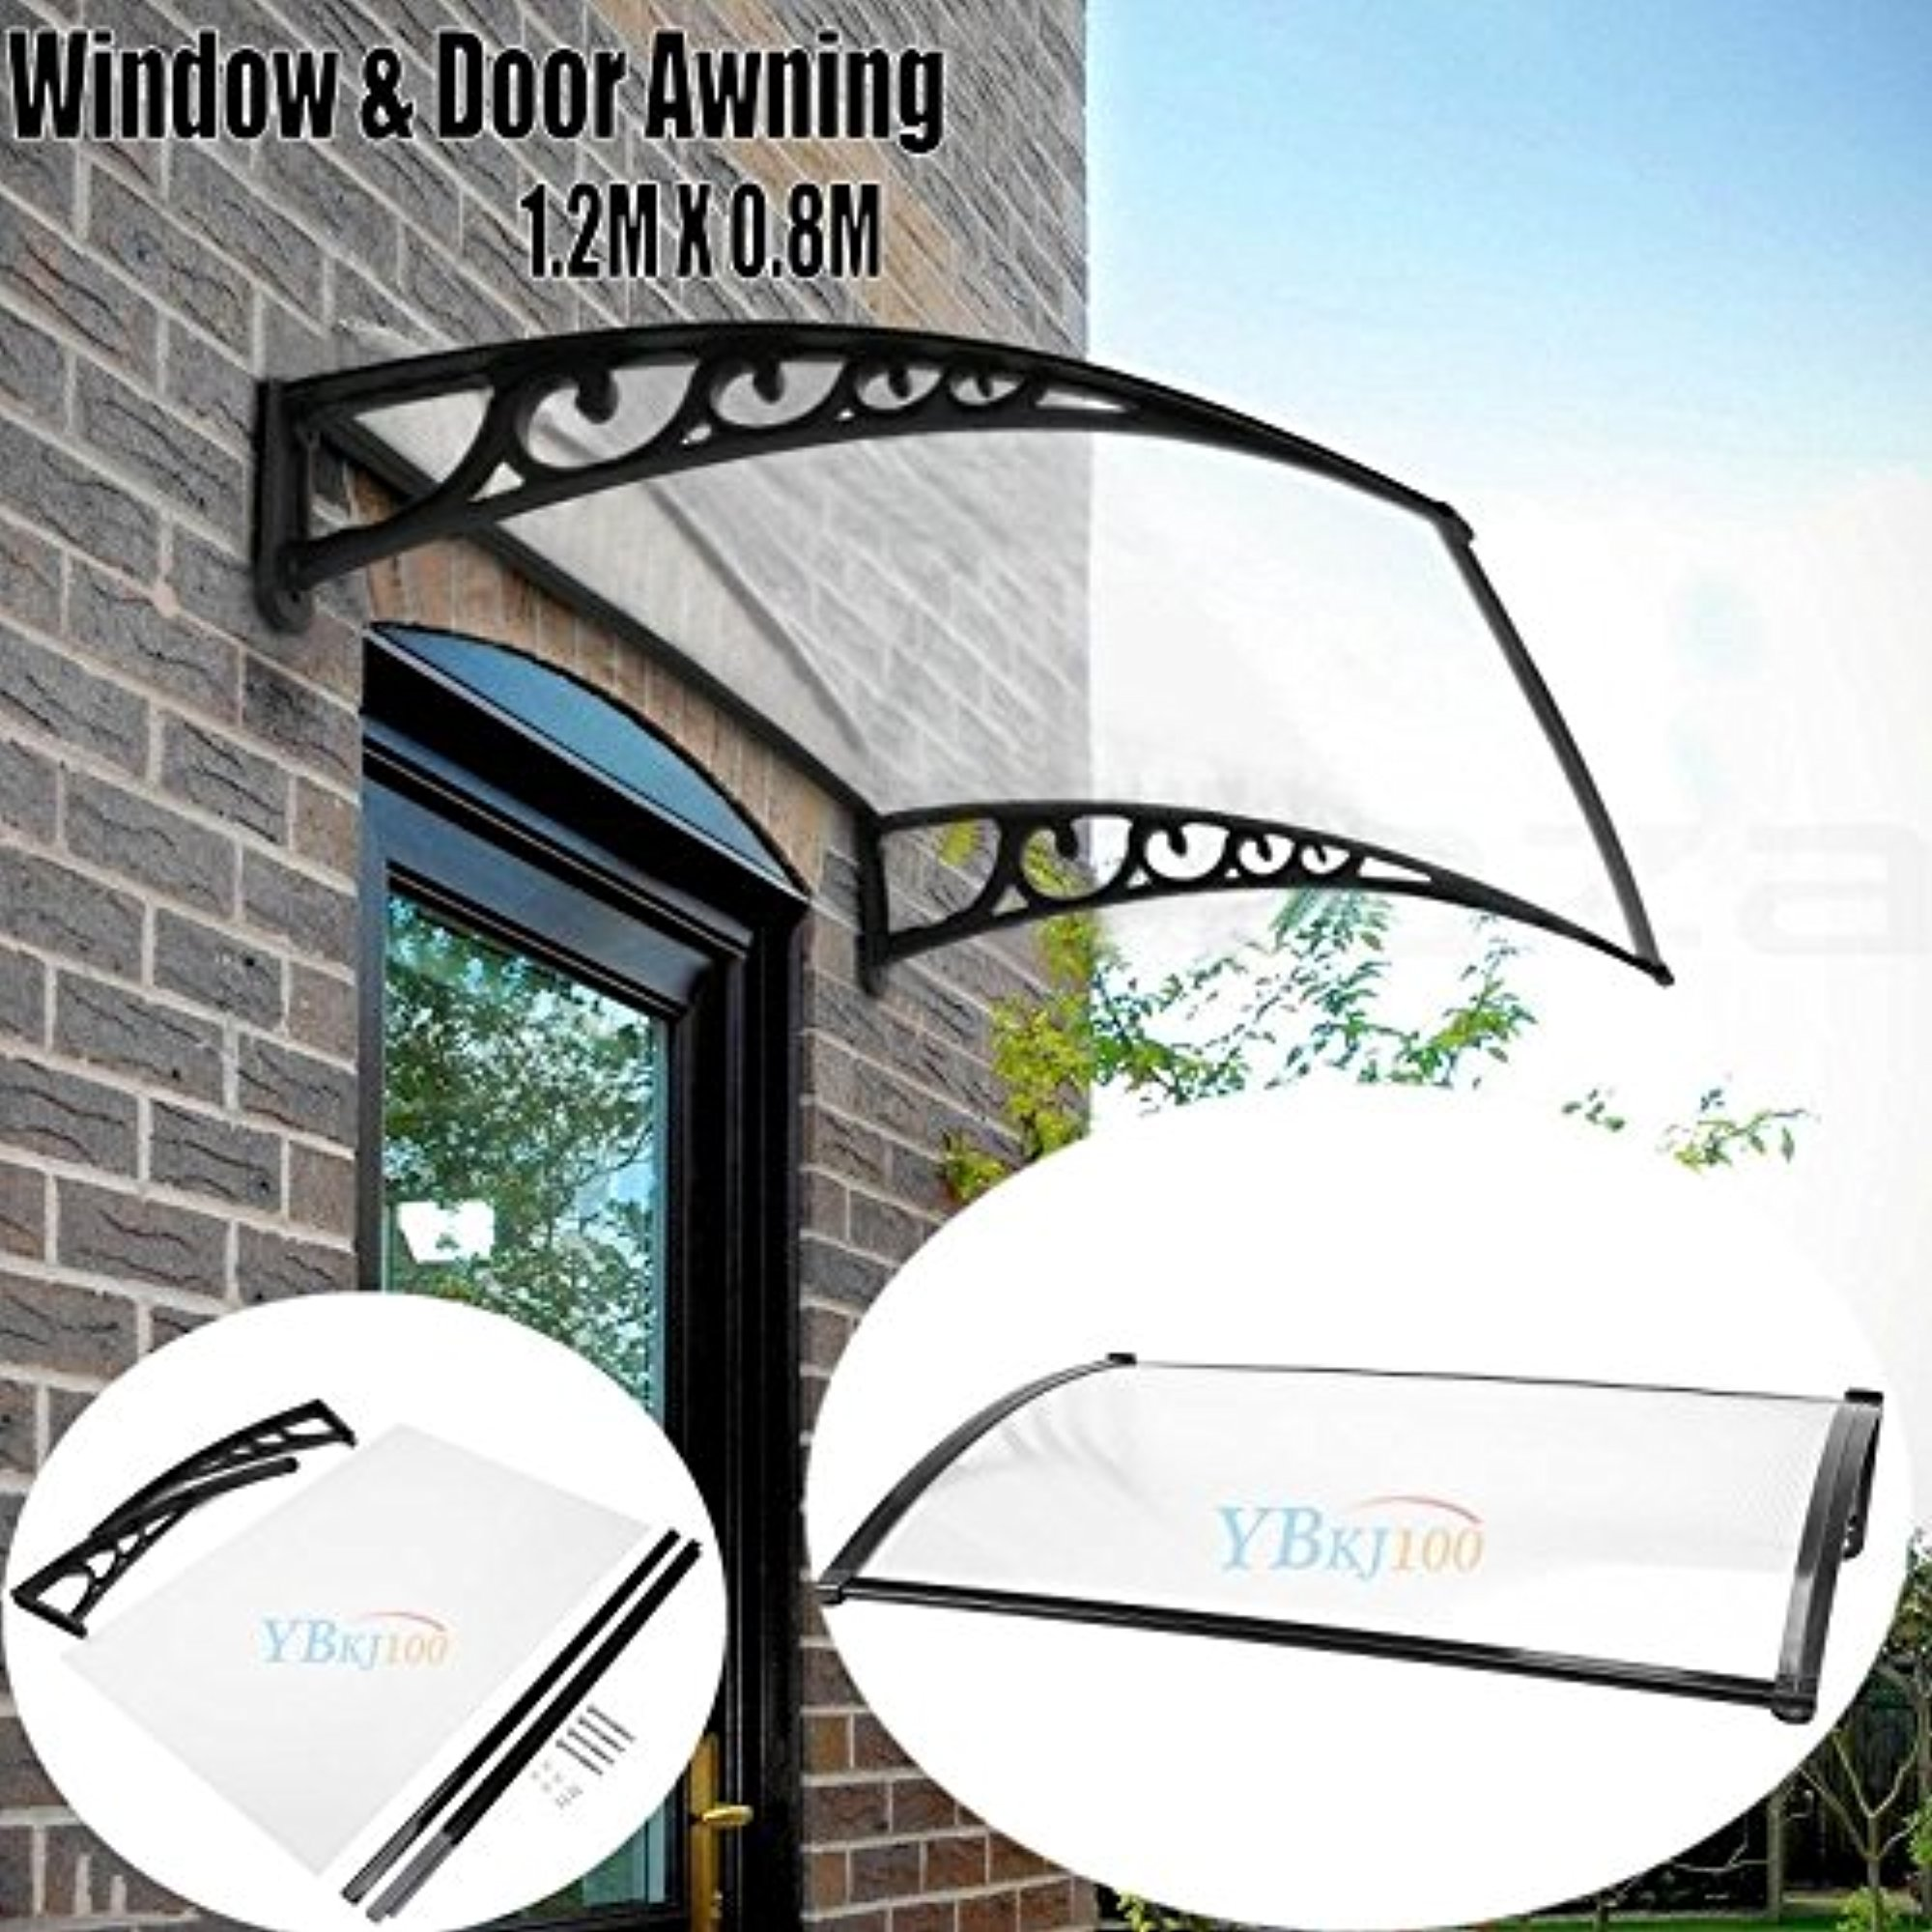 Overhead Window Door Awning Canopy Decorator Patio Cover Clear Polycarbonate Outdoor Cover UV Rain Snow  sc 1 st  Walmart & Overhead Window Door Awning Canopy Decorator Patio Cover Clear ...